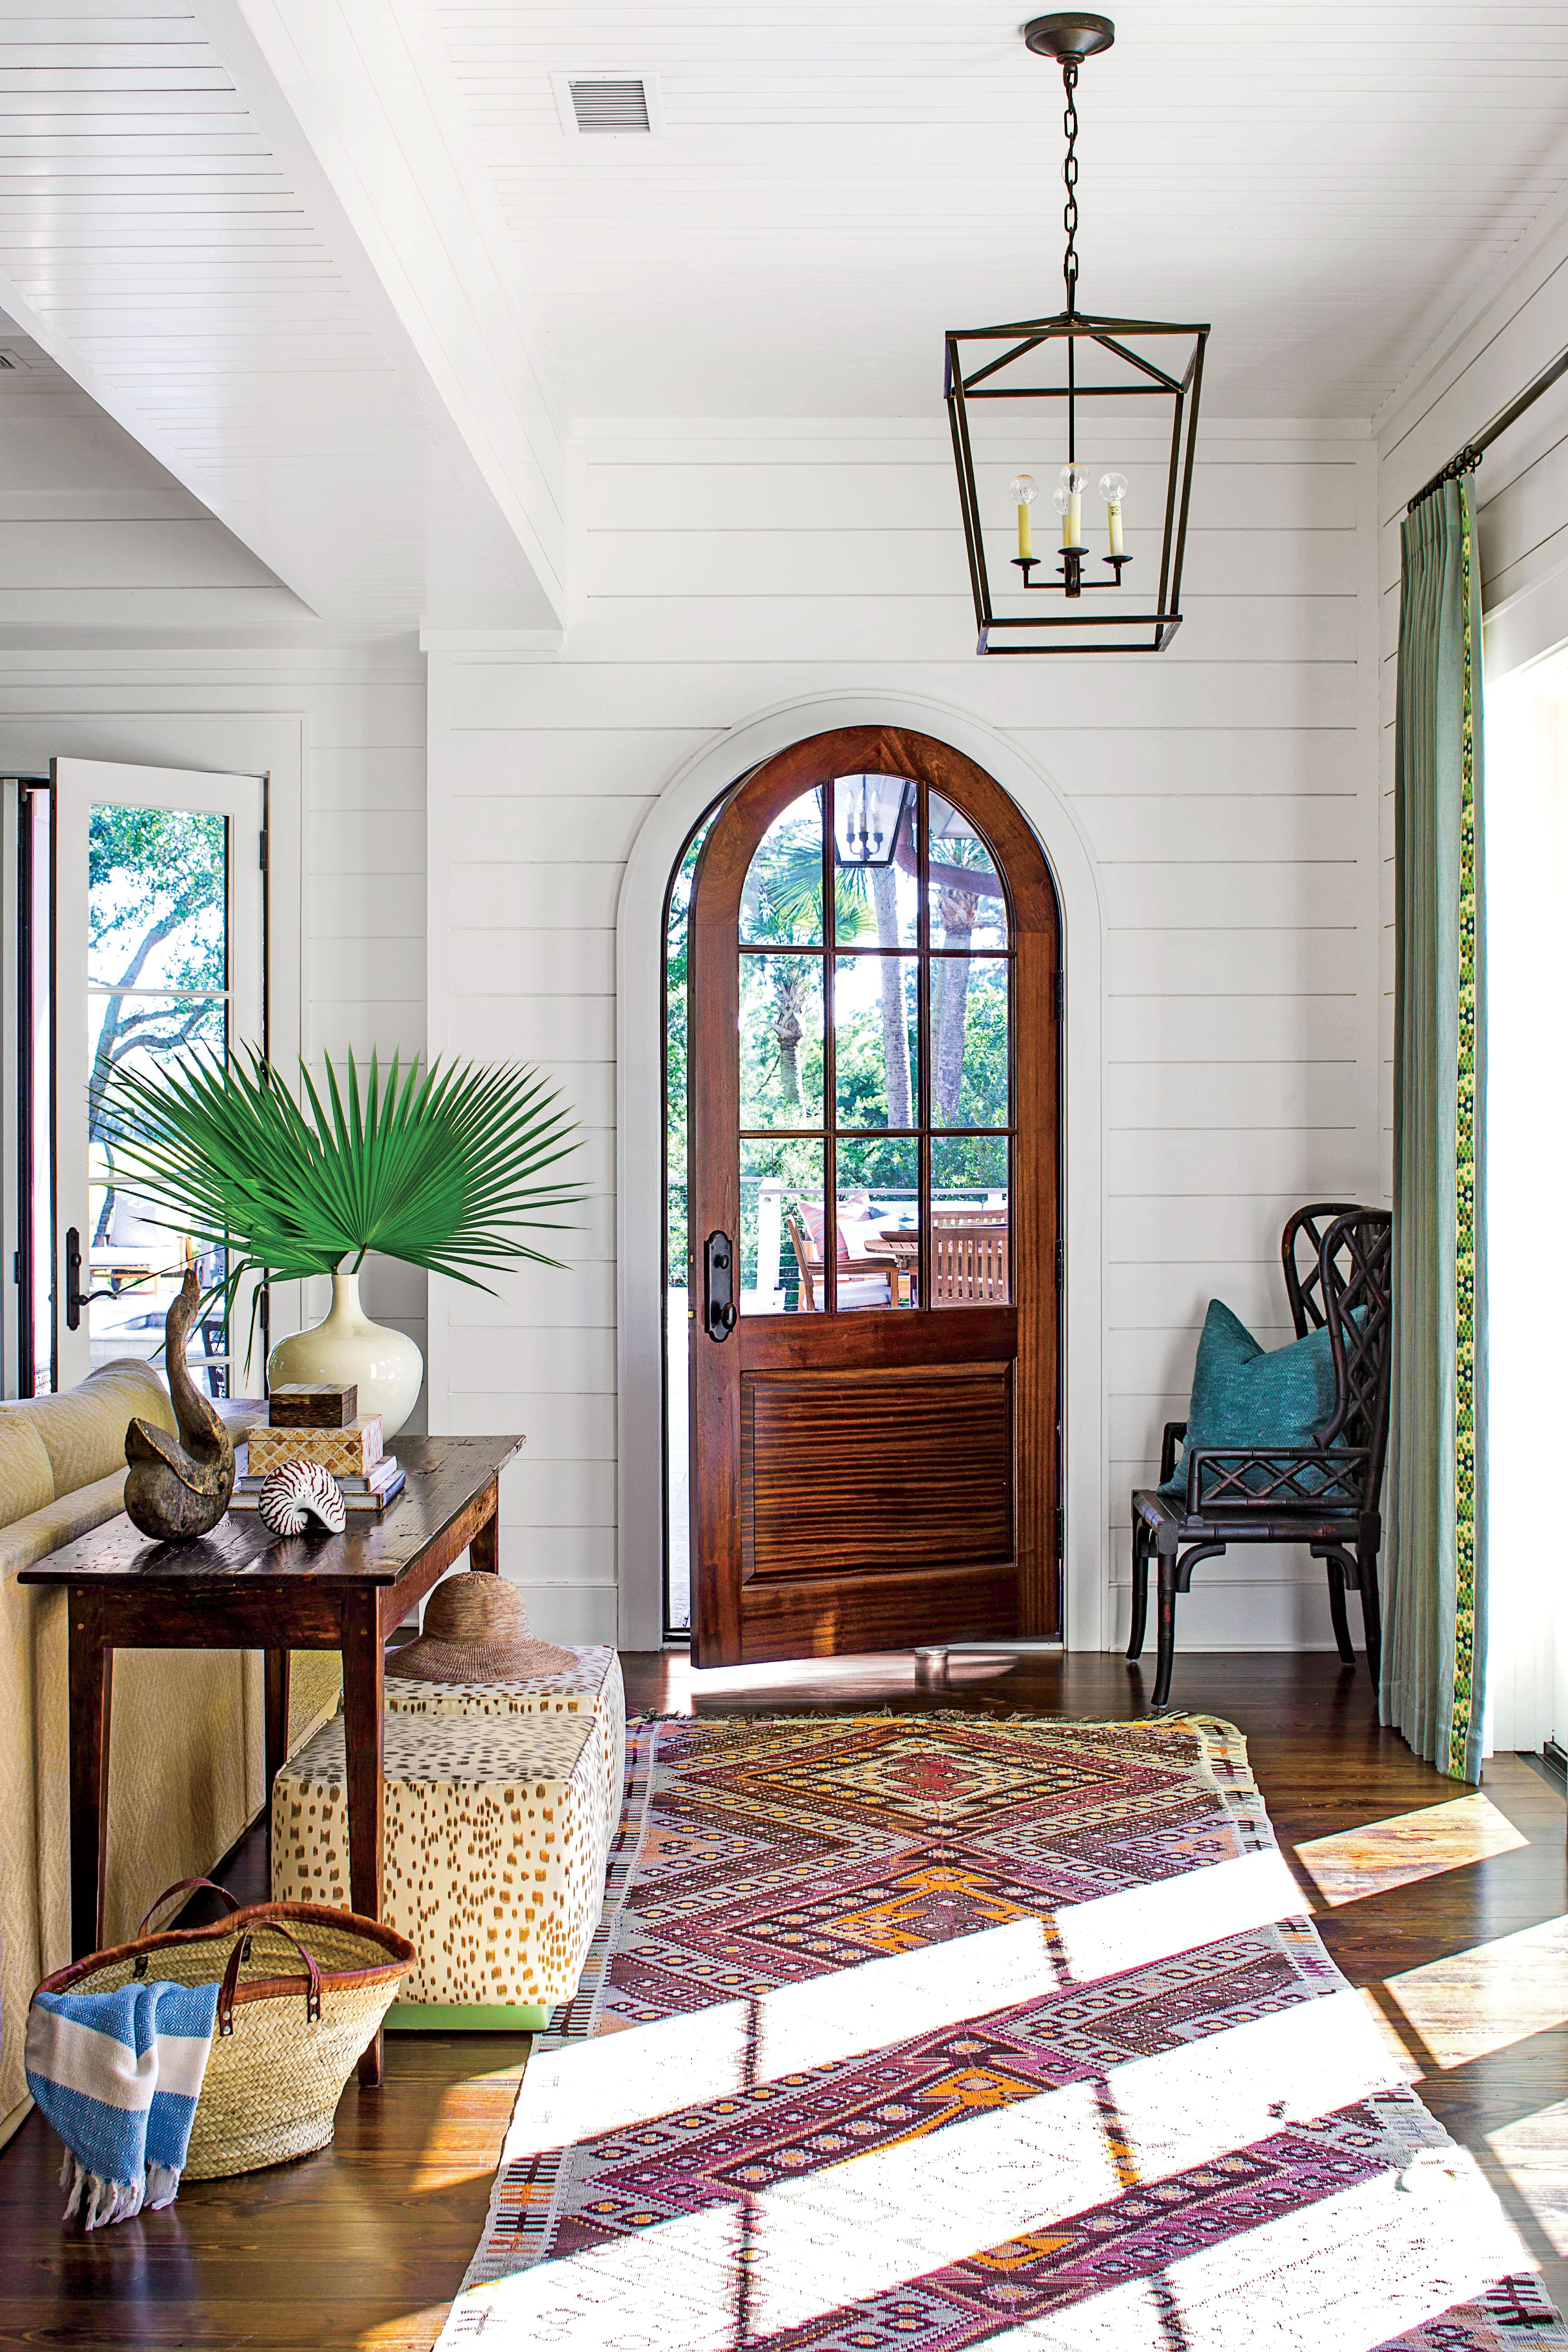 table full spaces decorating front entry entrance large decorations best size decoration of should benches to designs foyer cottage hall tall ideas entryway decor staircase decorate stairway lighting space outside design modern for mushroom way an pictures how your apartment beautiful small